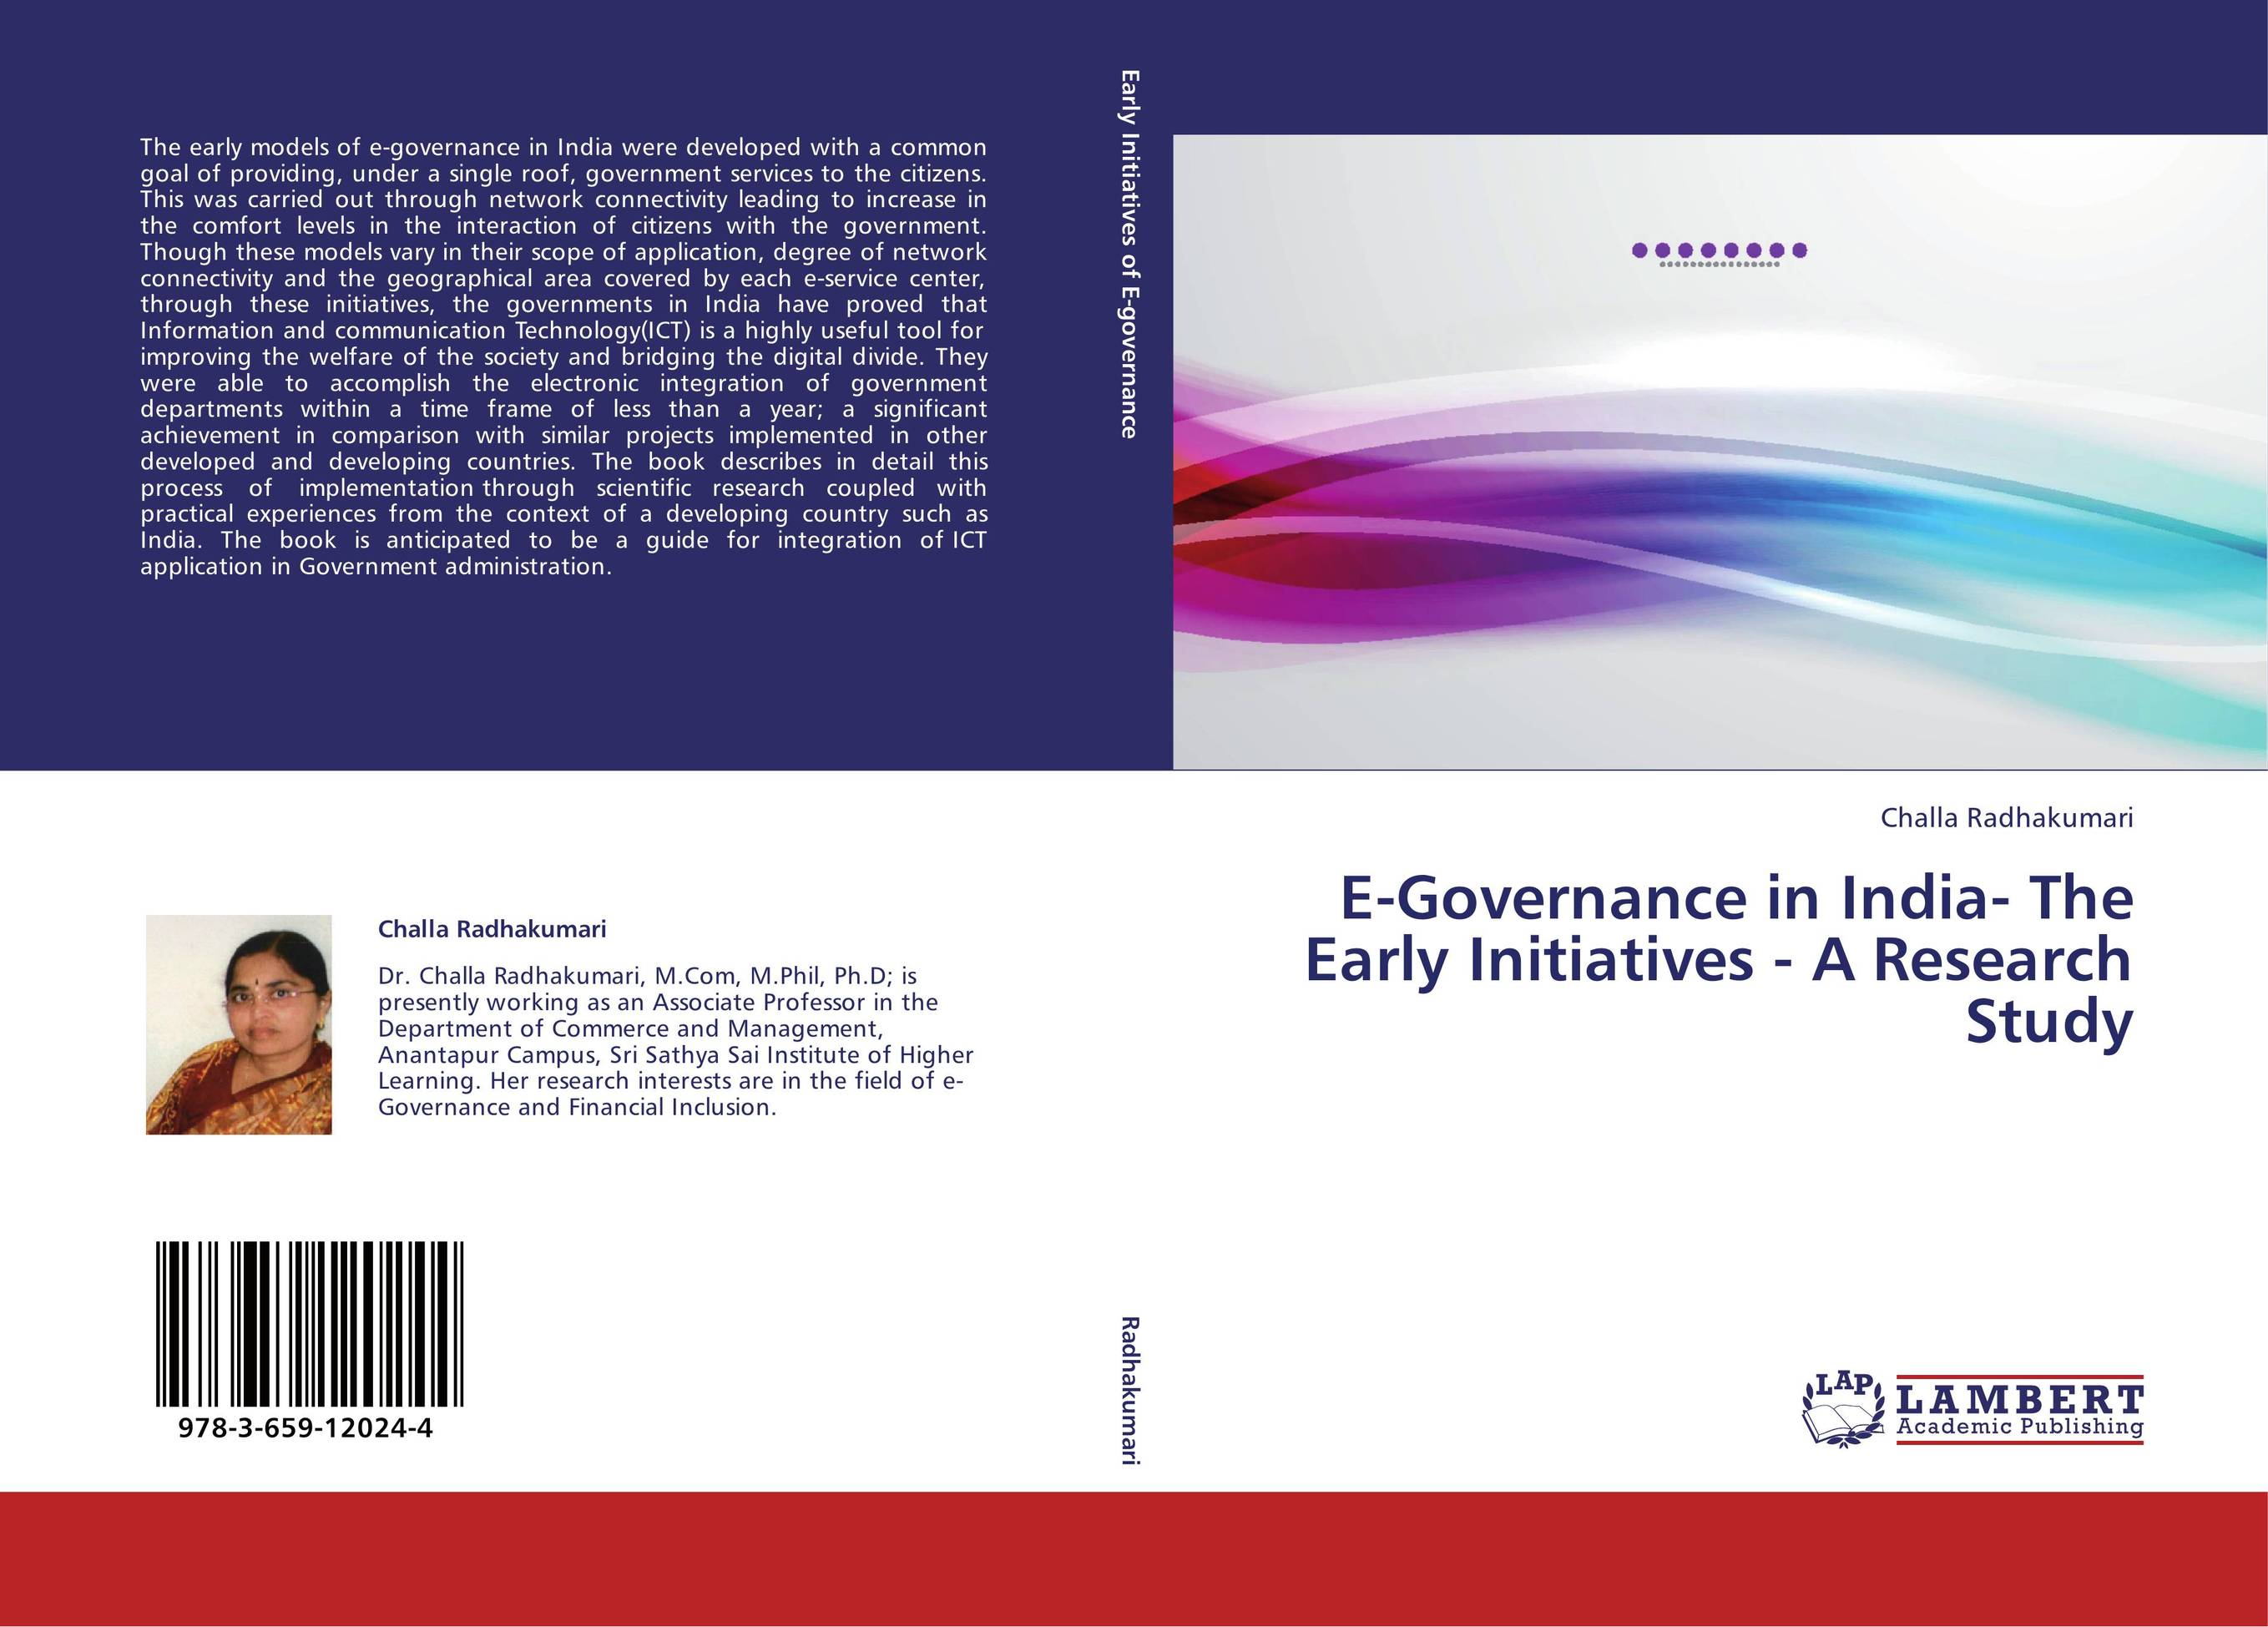 thesis on e-governance in india Electronic government has become one of the most important issues in the transformation of the public sector in many countries and so new dispensation of e-governance requires new set of laws.